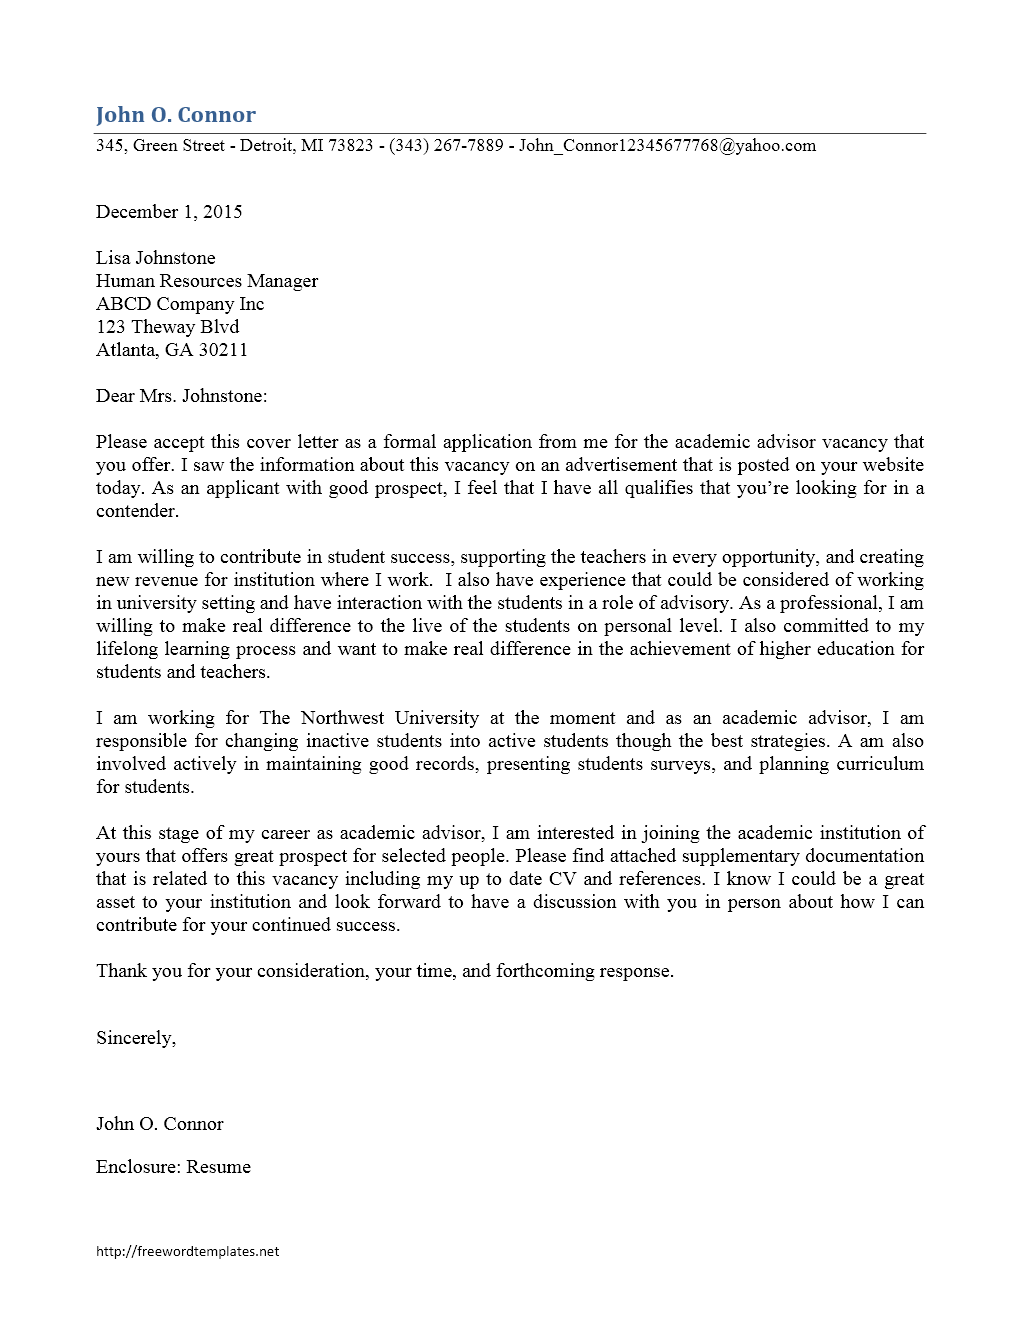 Help Writing Popular Phd Essay On Donald Trump Cover Letter For A Phd  Application Aploon